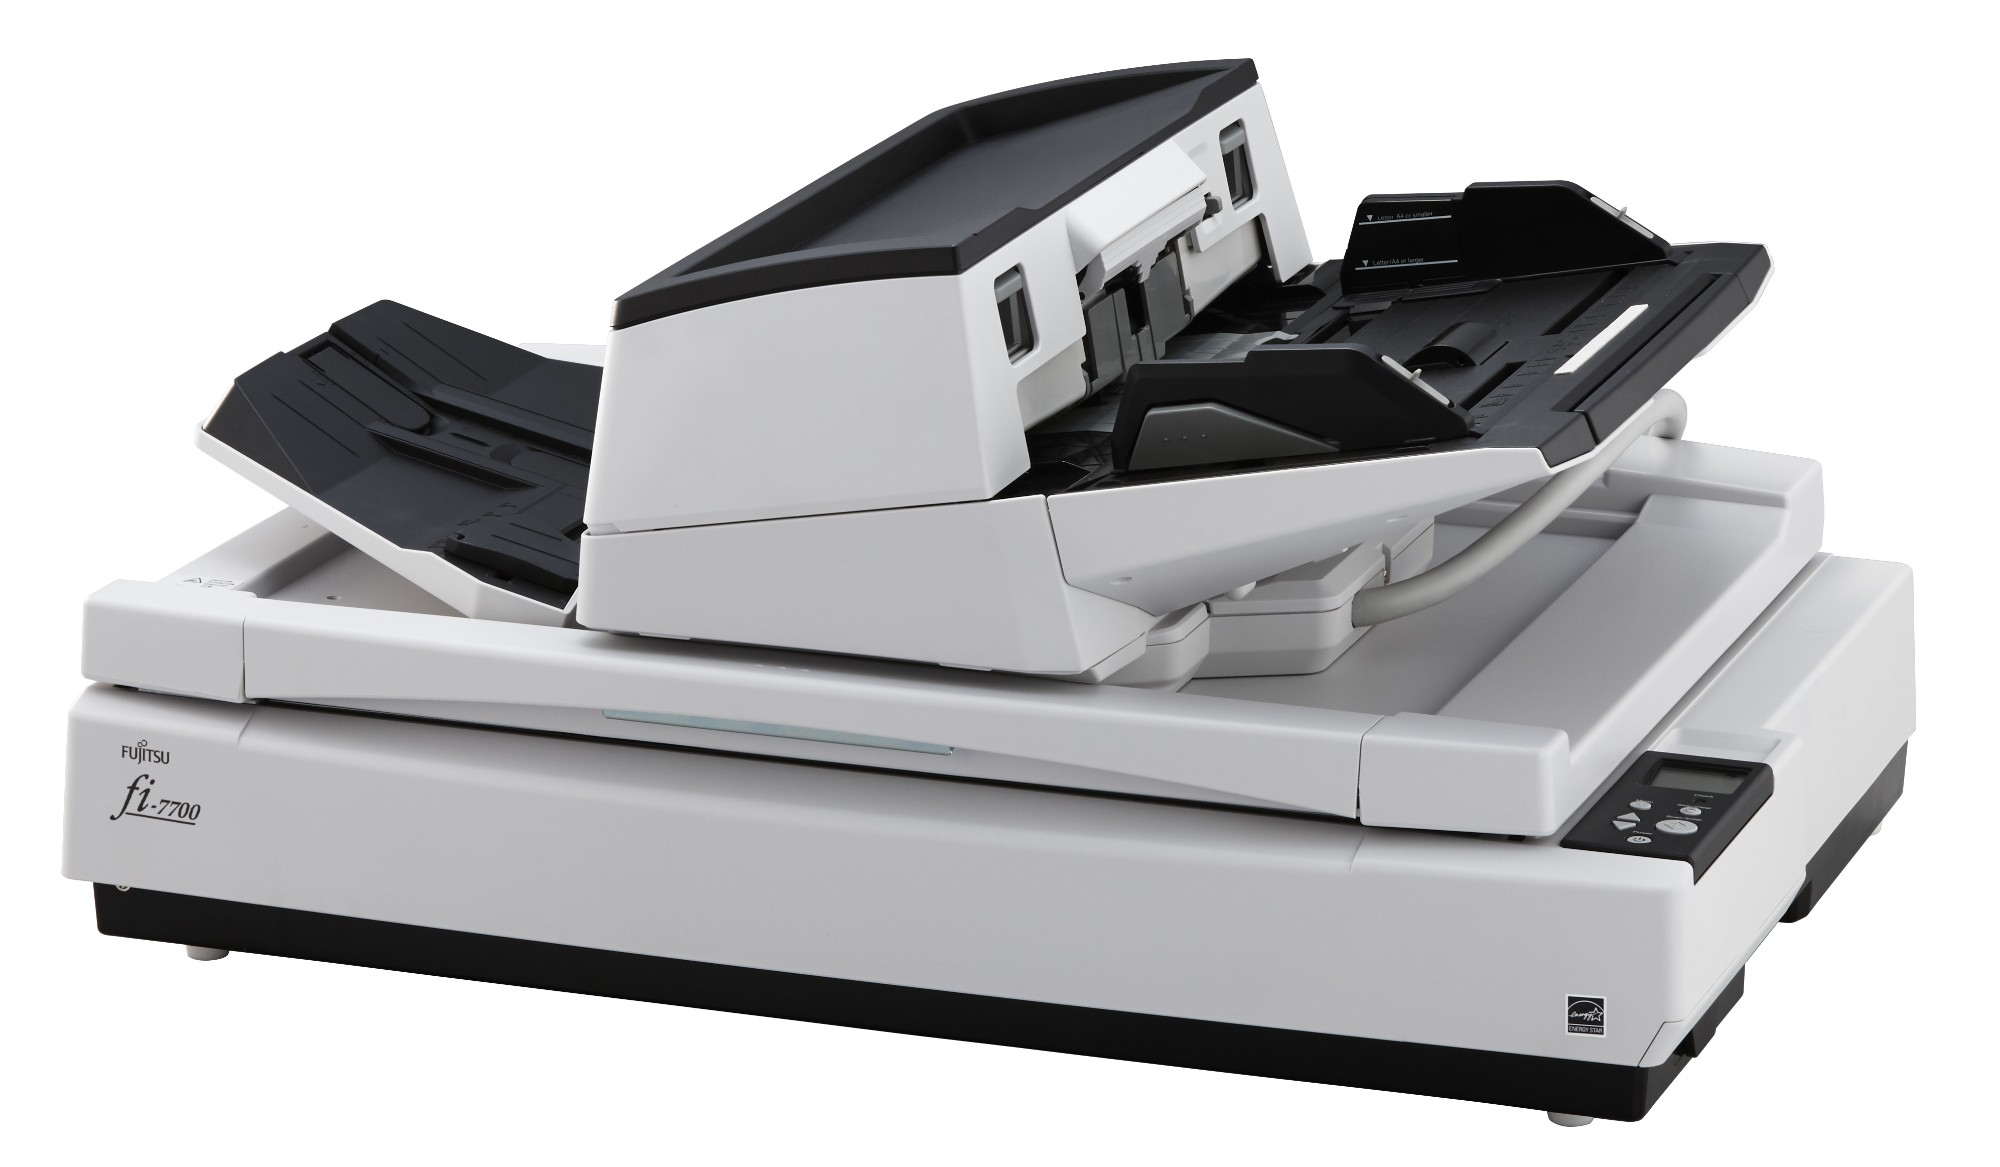 Fujitsu fi-7700S - Document scanner - ARCH B - 600 dpi x 600 dpi - up to 75 ppm (mono) / up to 75 pp